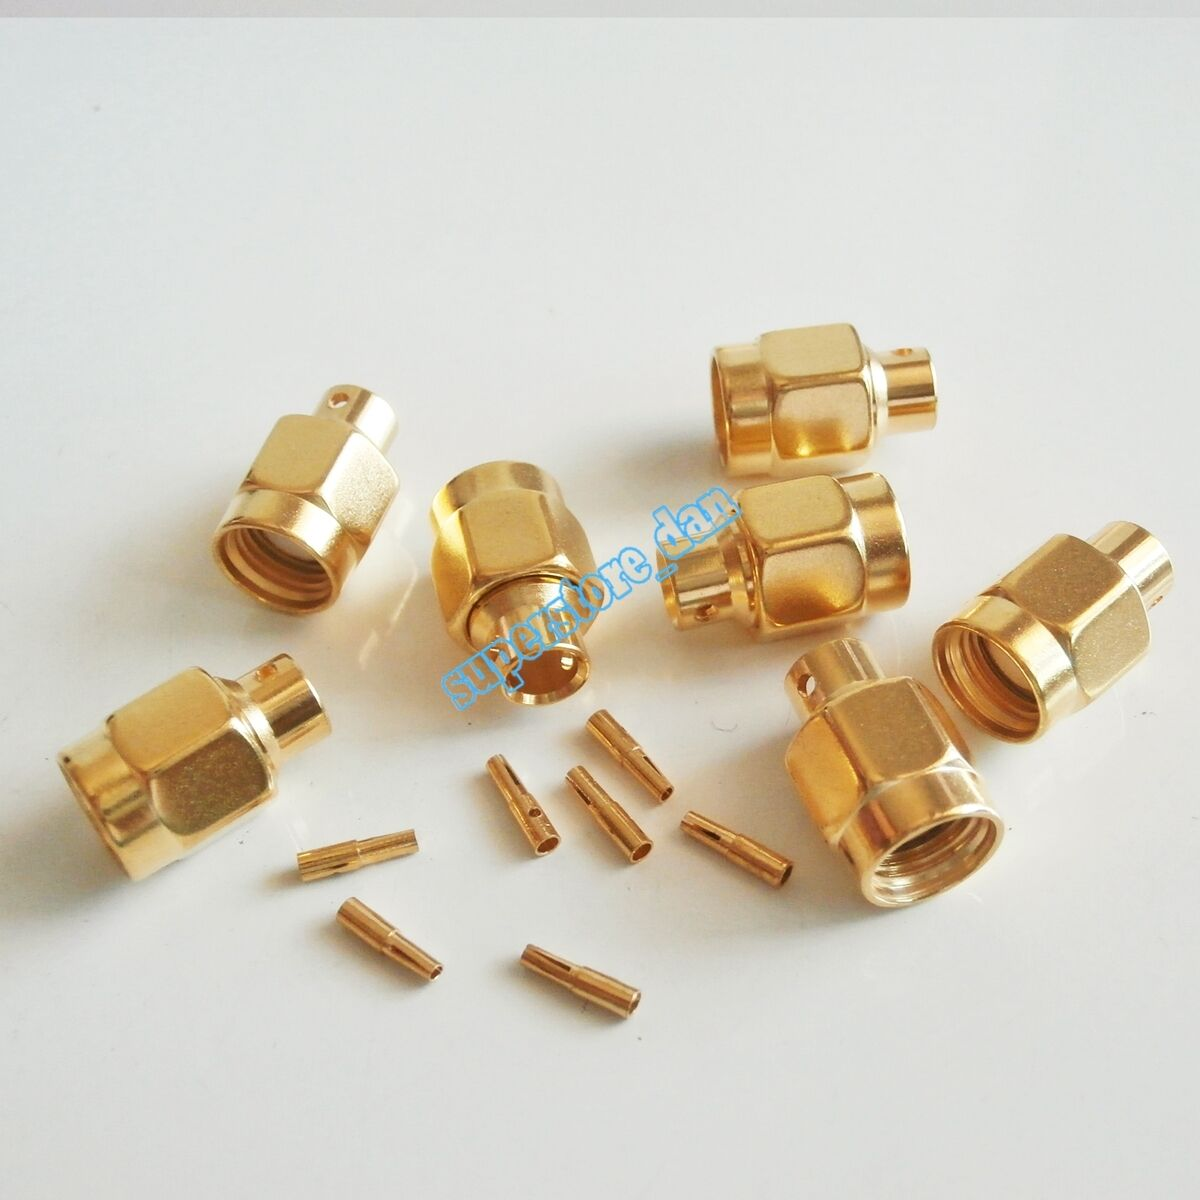 10pcs Rp Sma Solder Plug Male Straight Connector Semi Rigid Rg402 Kabel Pigtail Female To Ufl Coaxial Rpsma 0141 Cable 1 Of 4free Shipping